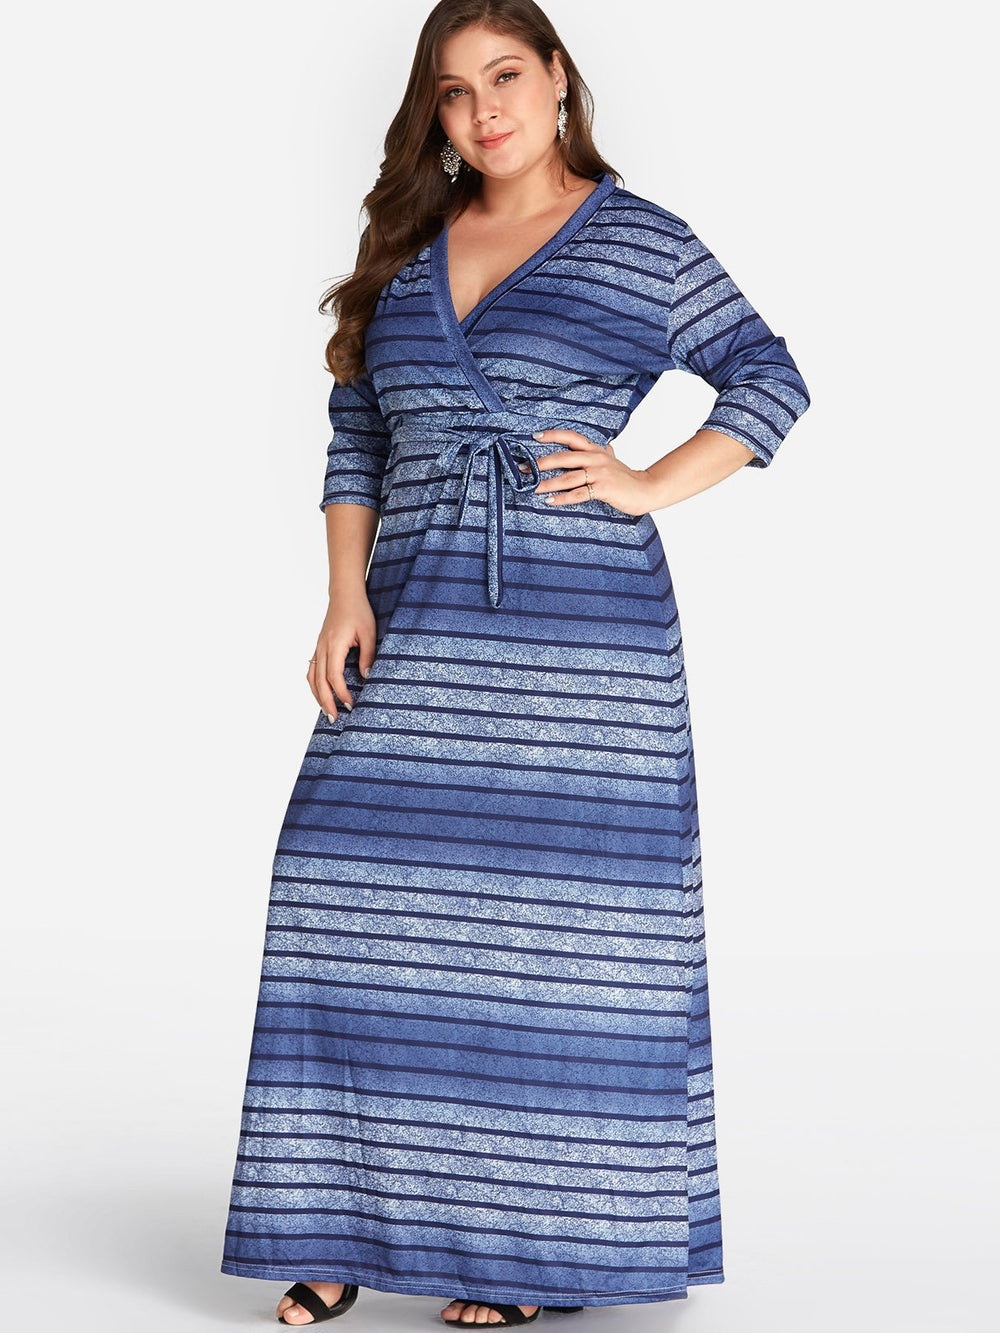 Womens Striped Plus Size Dress